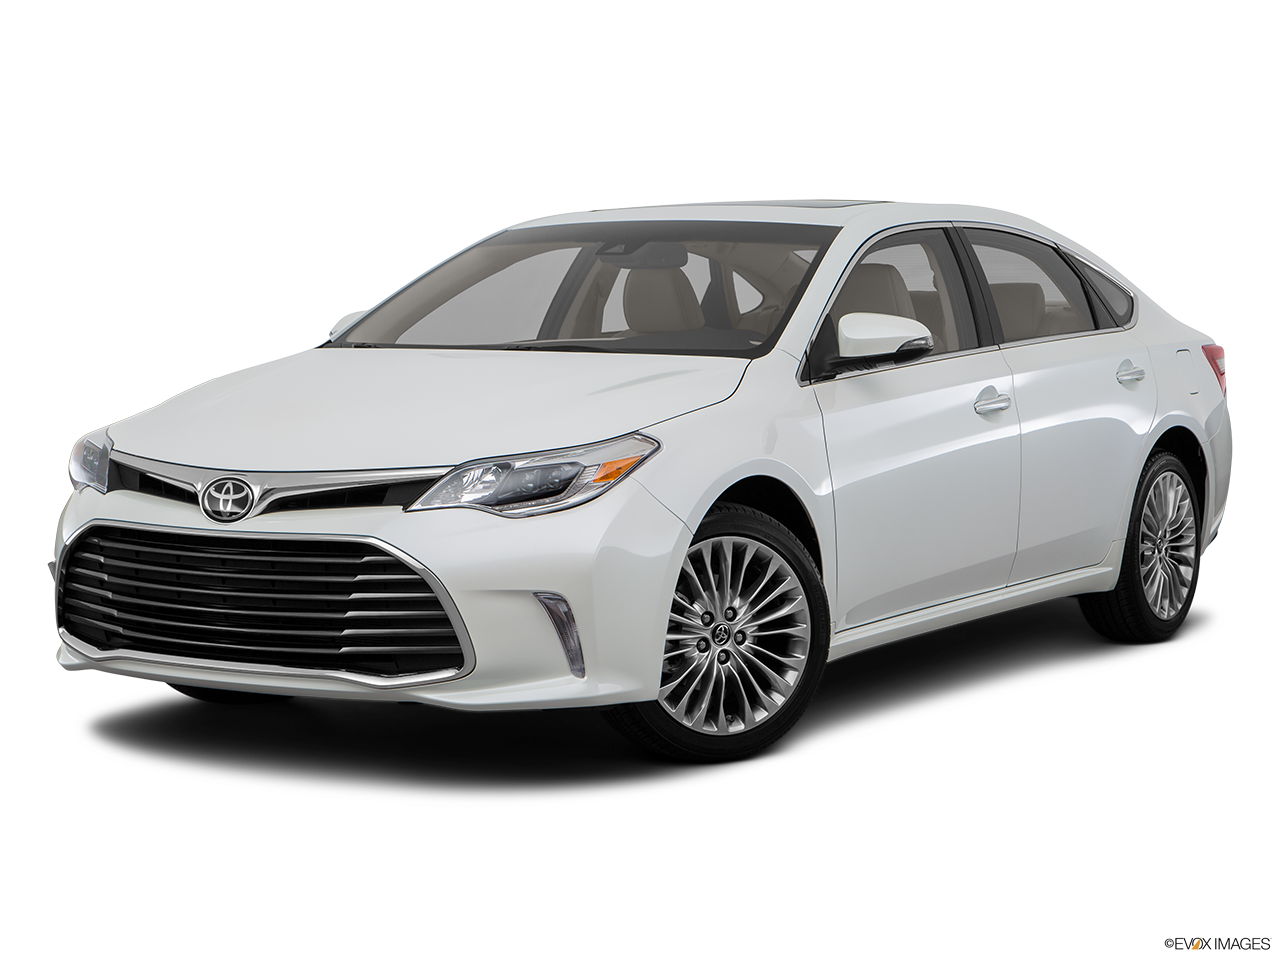 Test Drive A 2016 Toyota Avalon at Tustin Toyota in Tustin